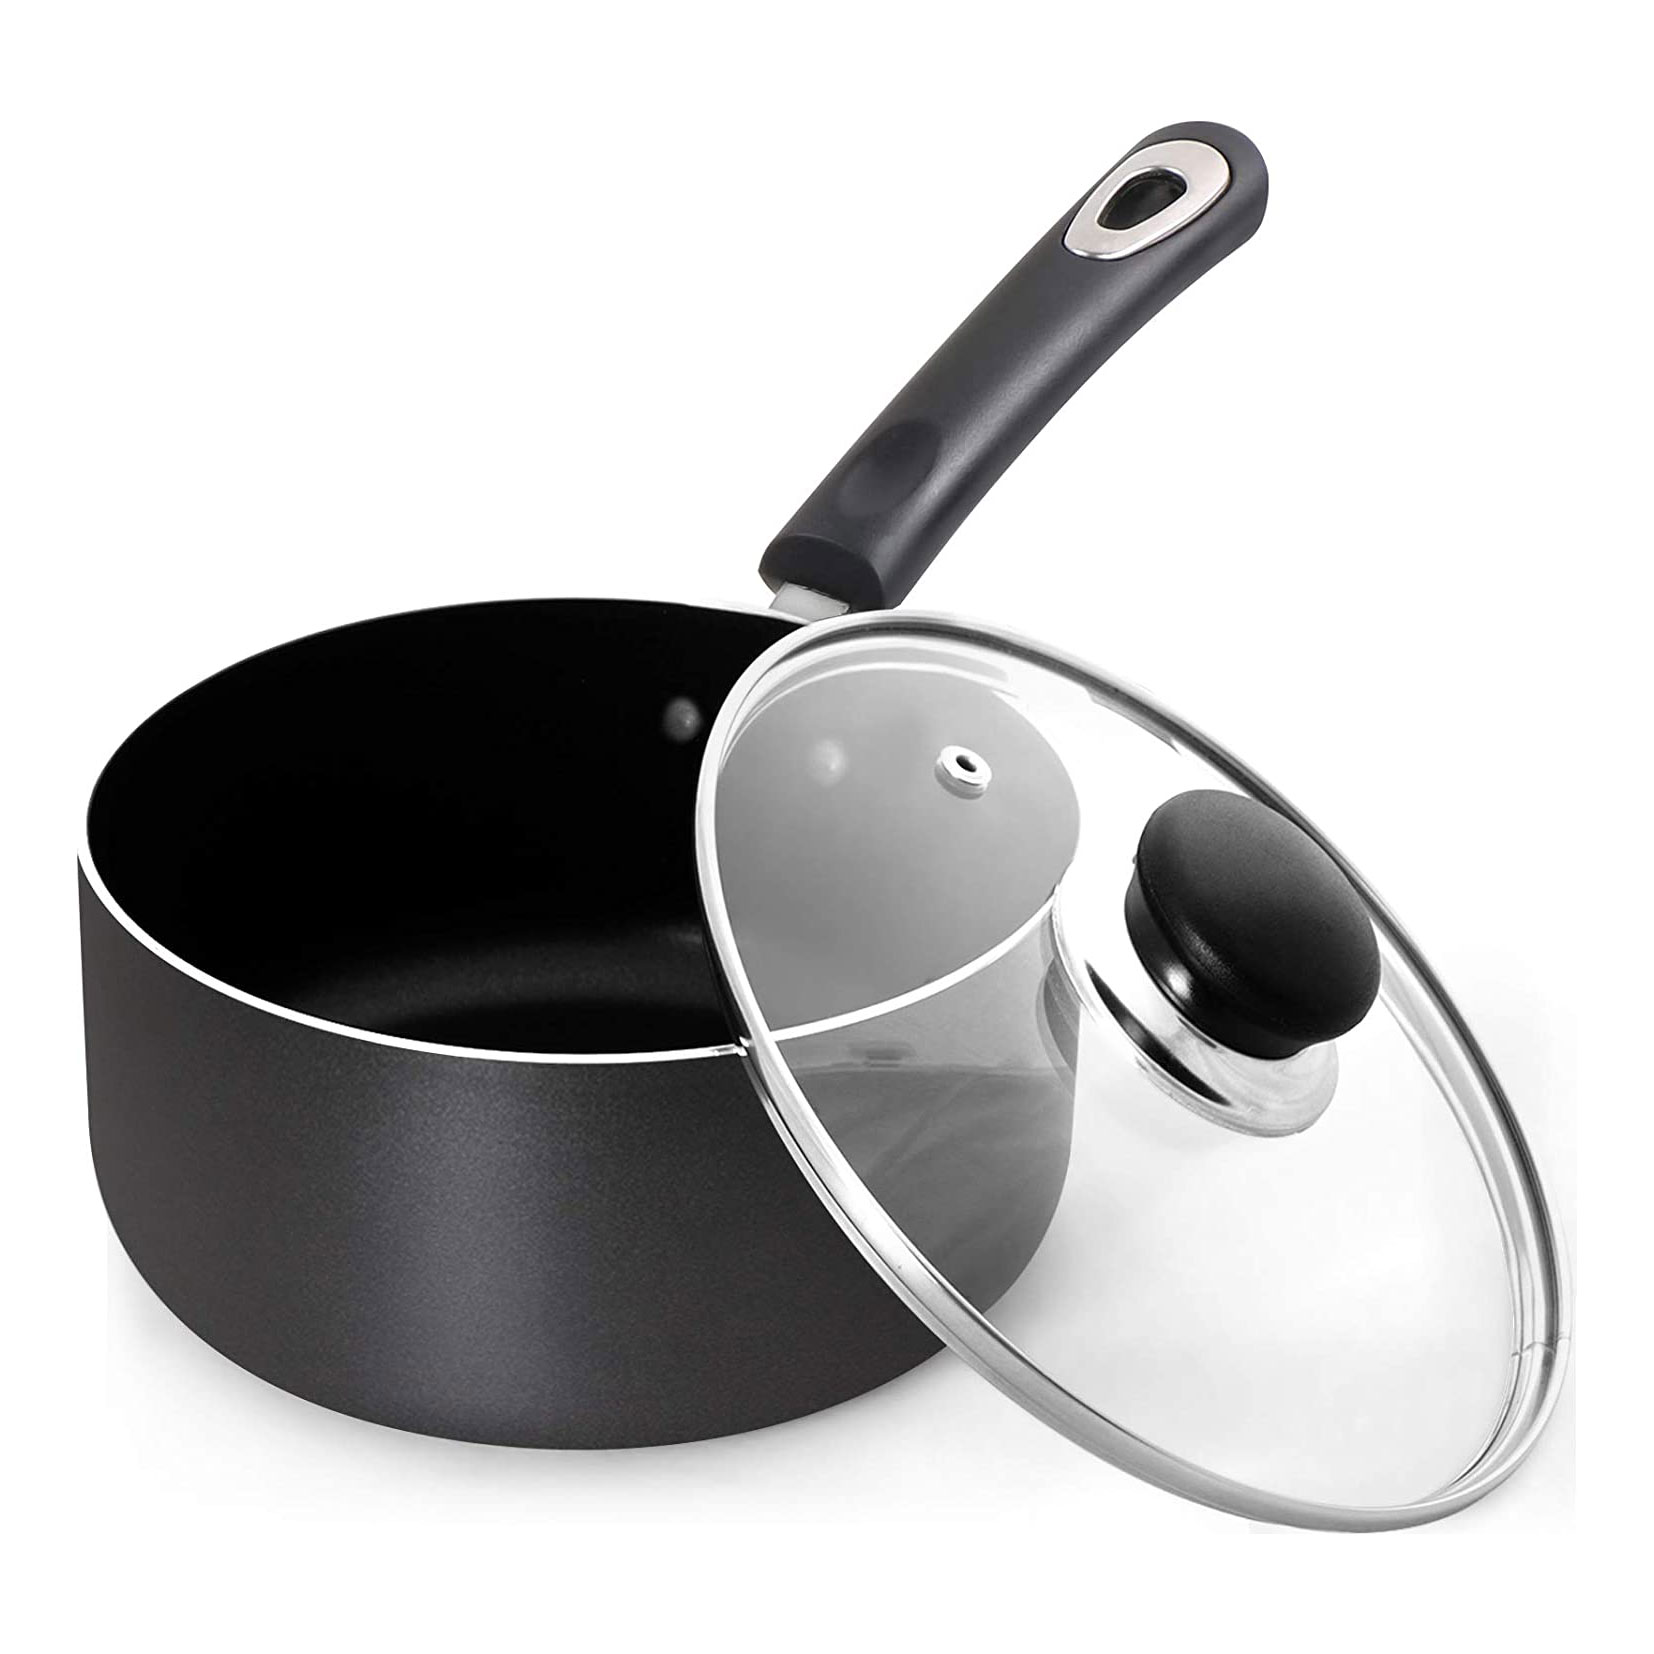 nonstick saucepan with clear lid